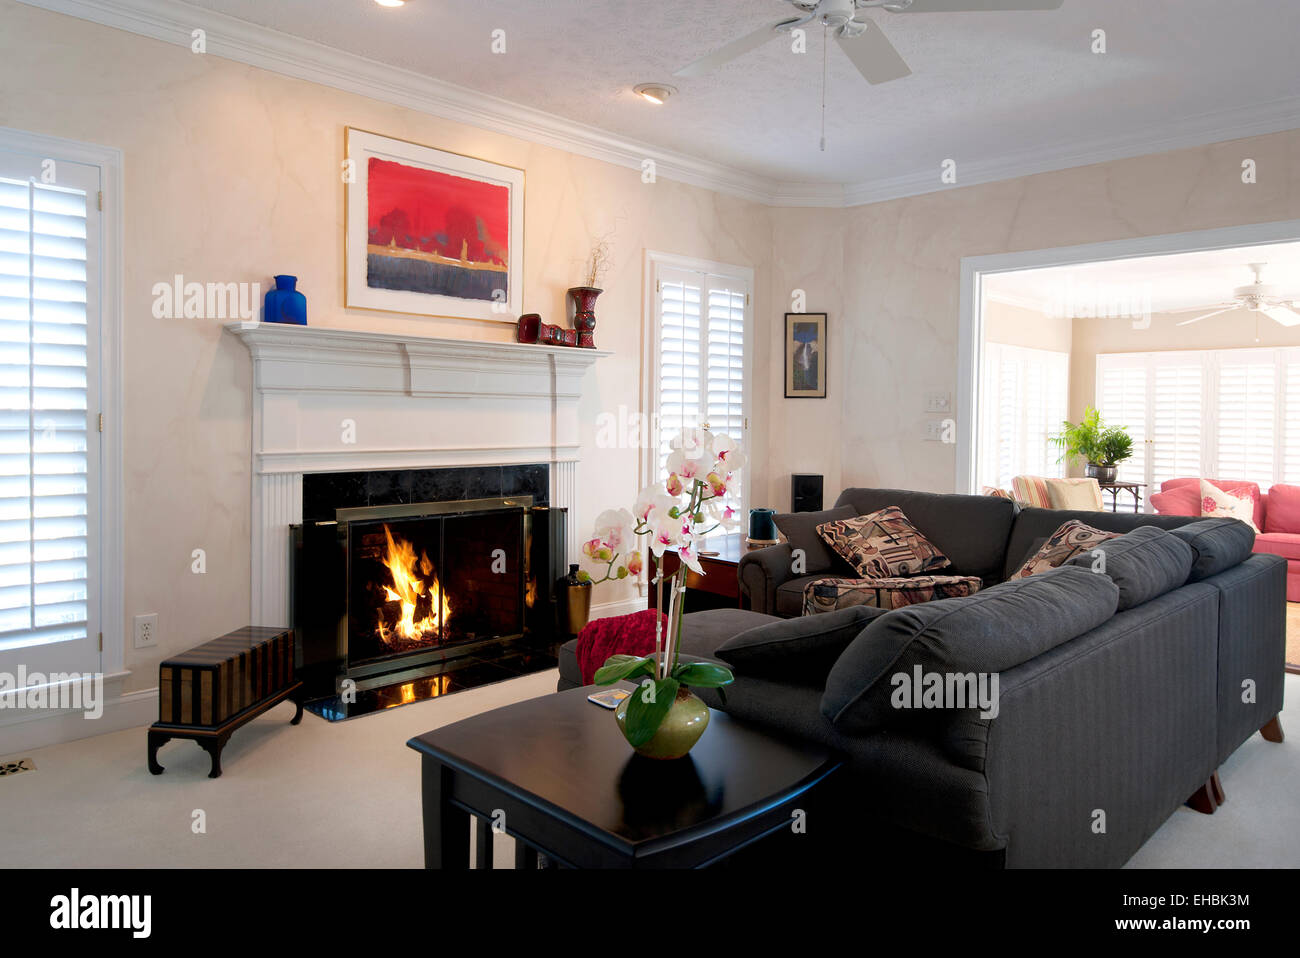 Modern residential interior furnished living room in a single family house - Stock Image